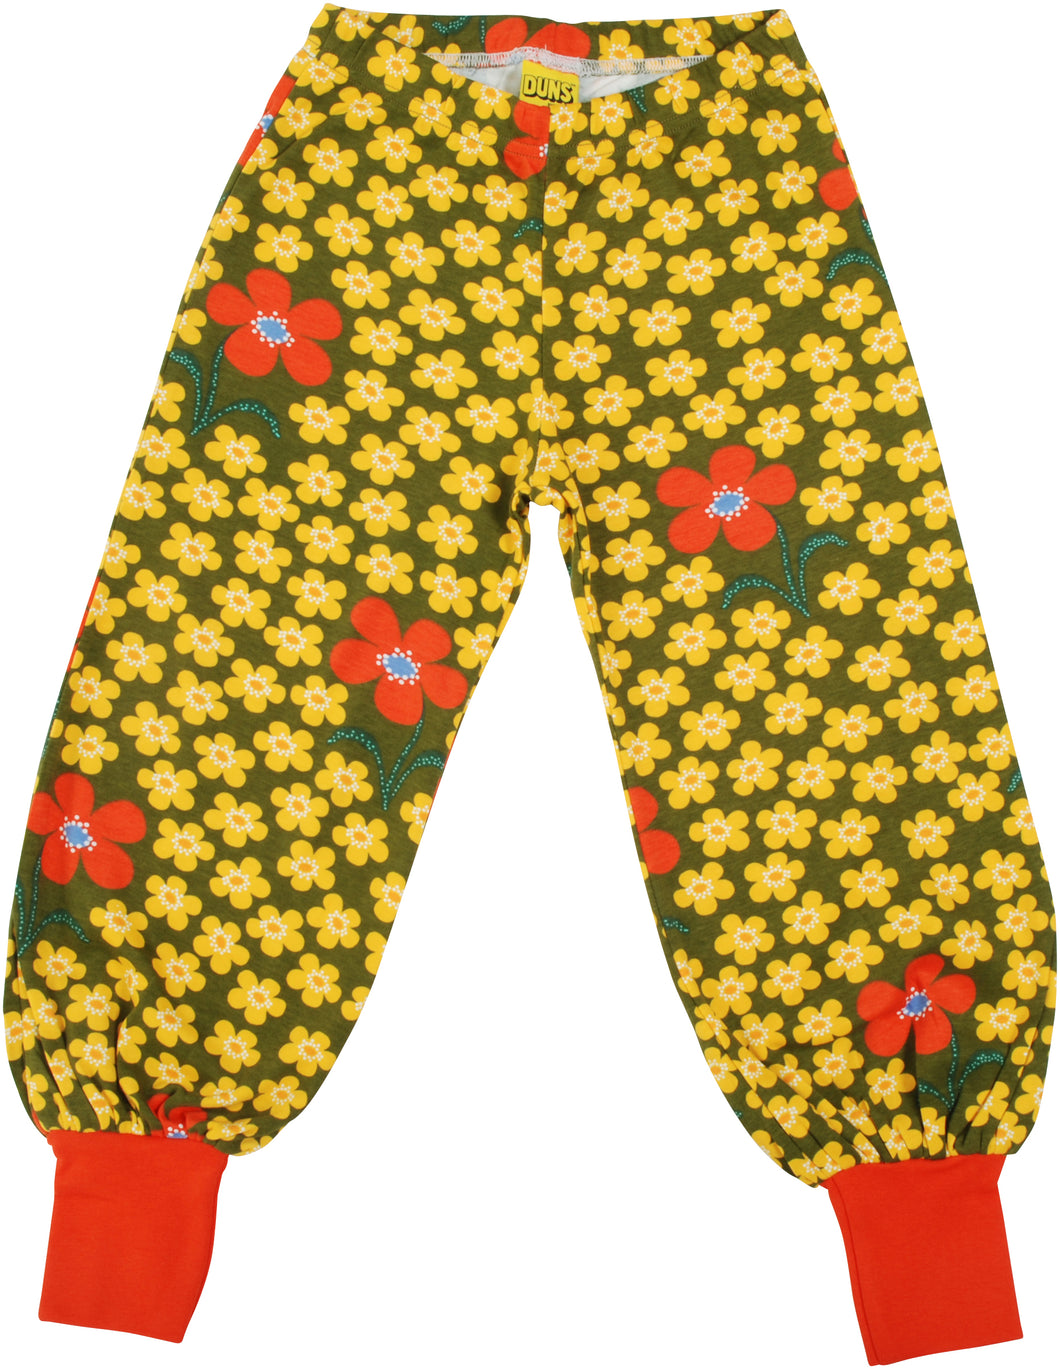 DUNS Olive Flower Baggy Pants